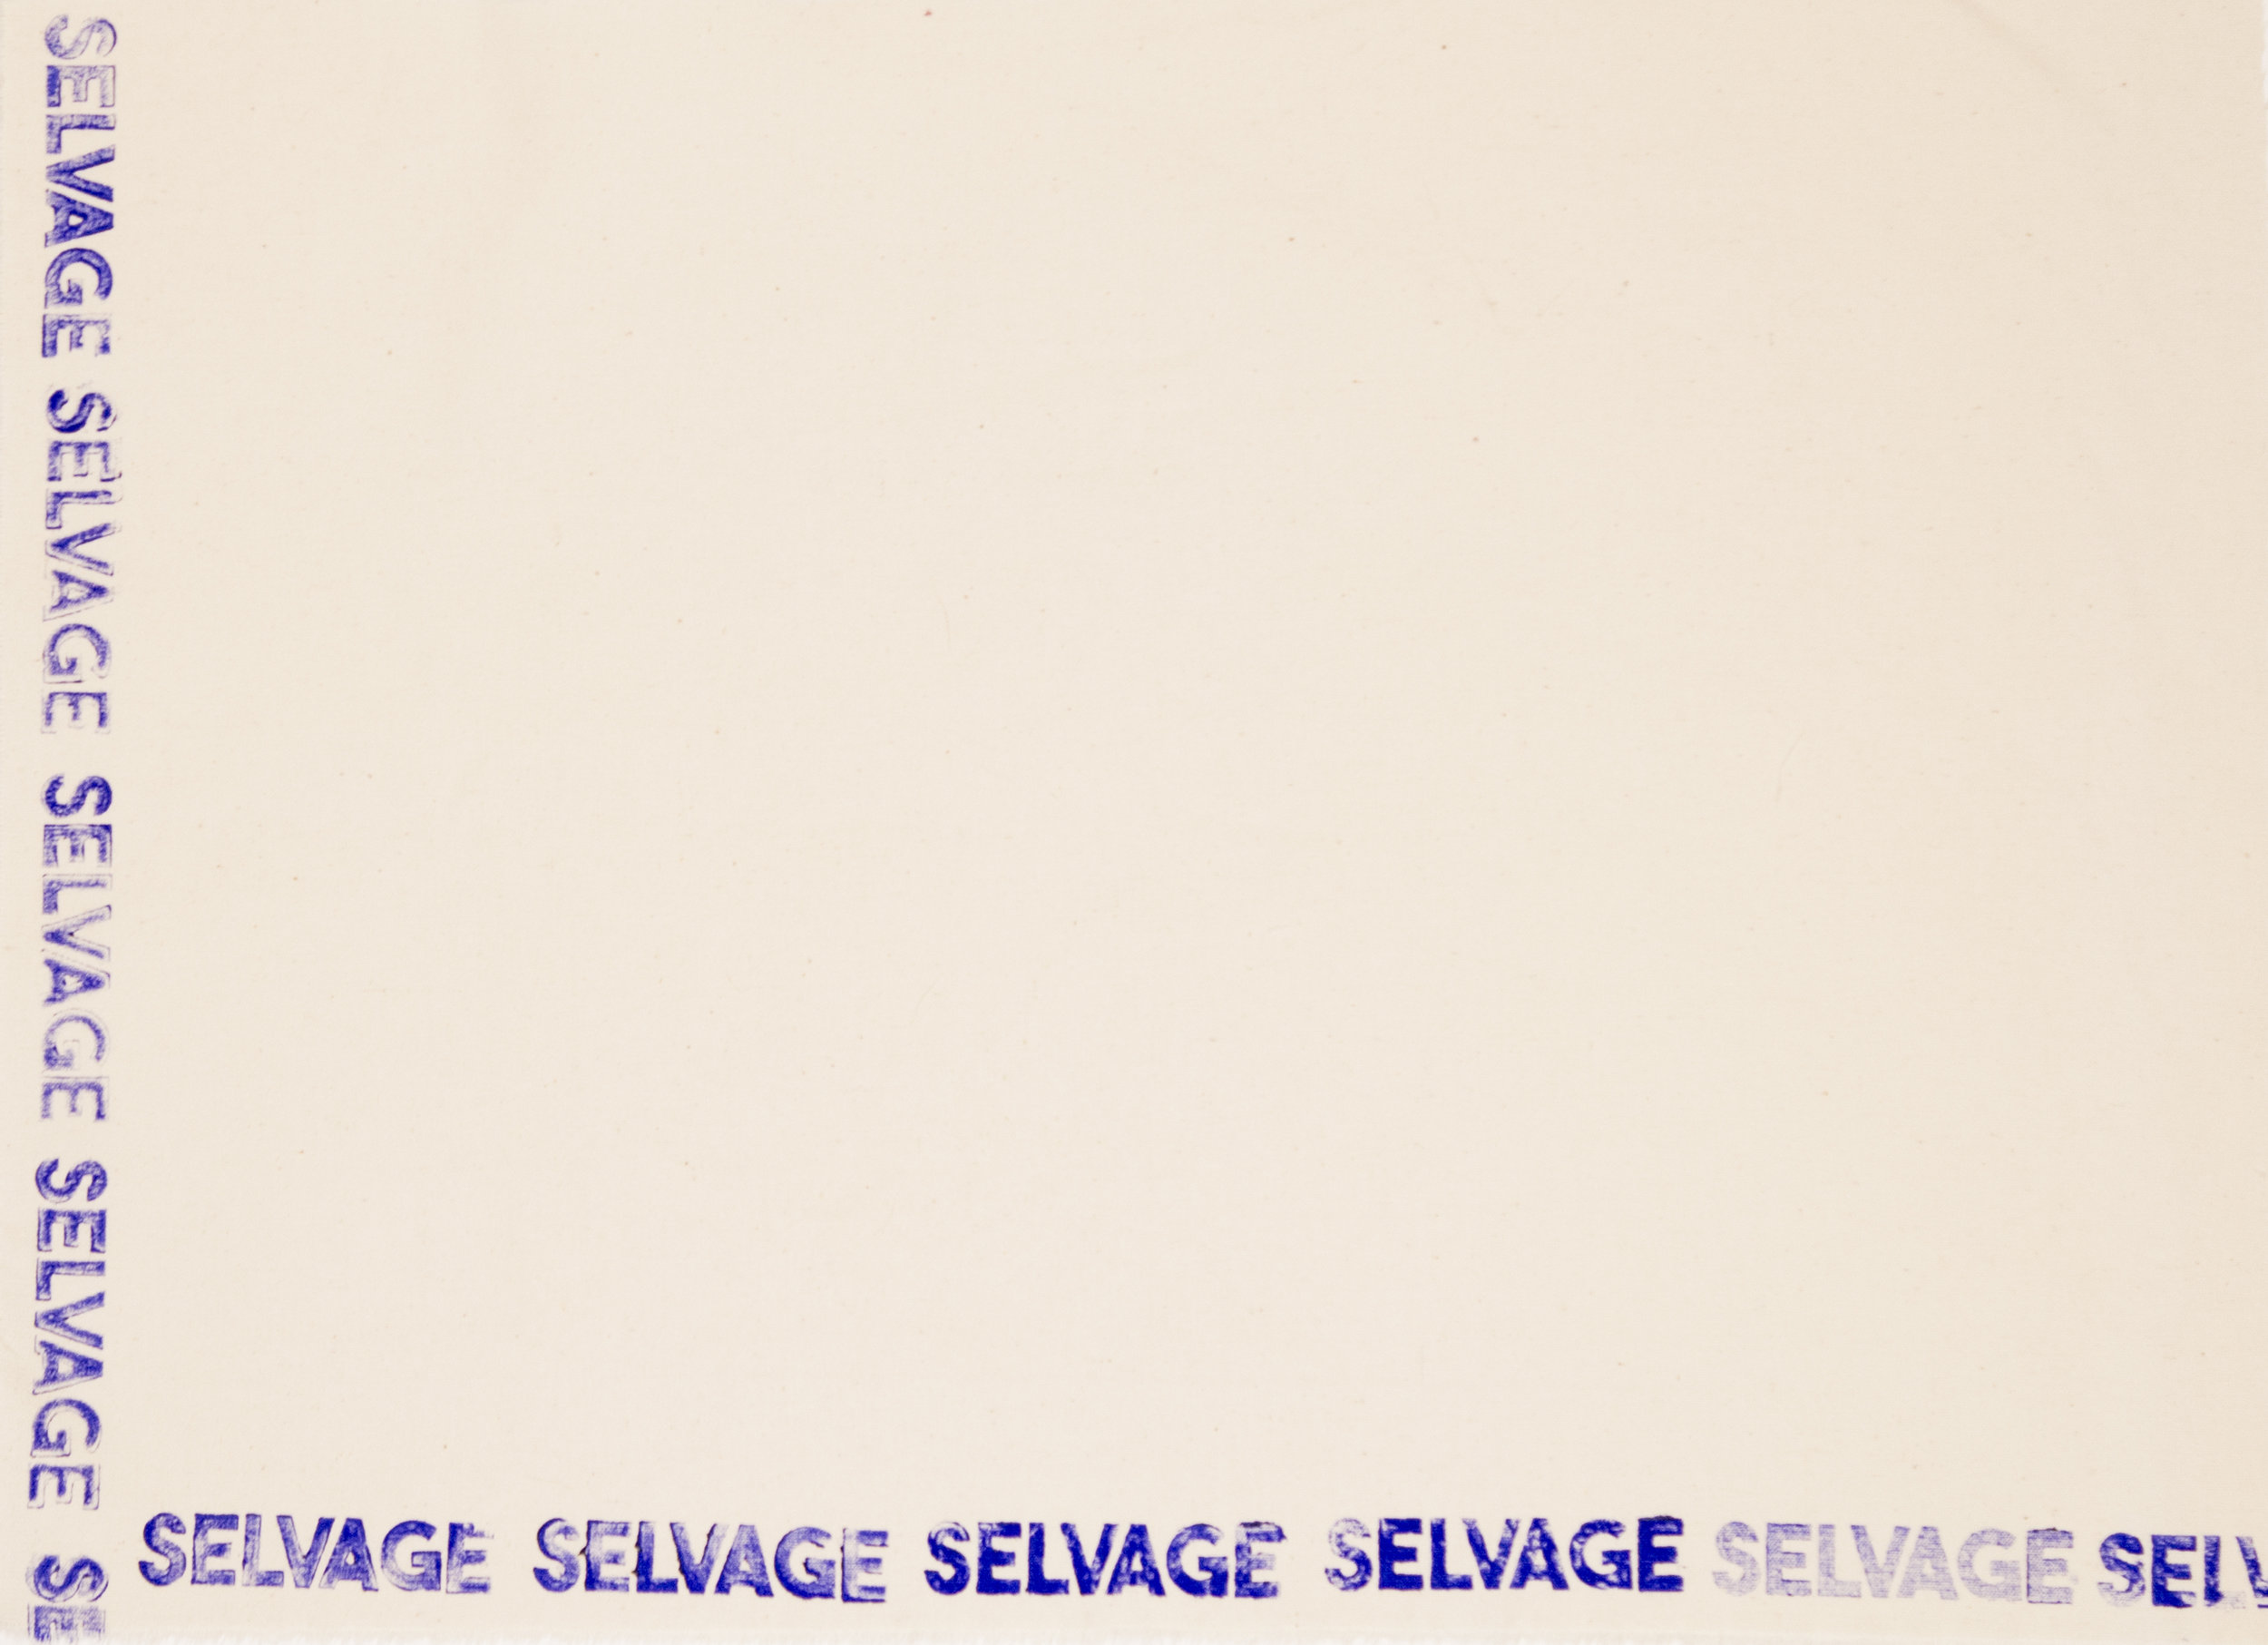 Selvage copy.jpg